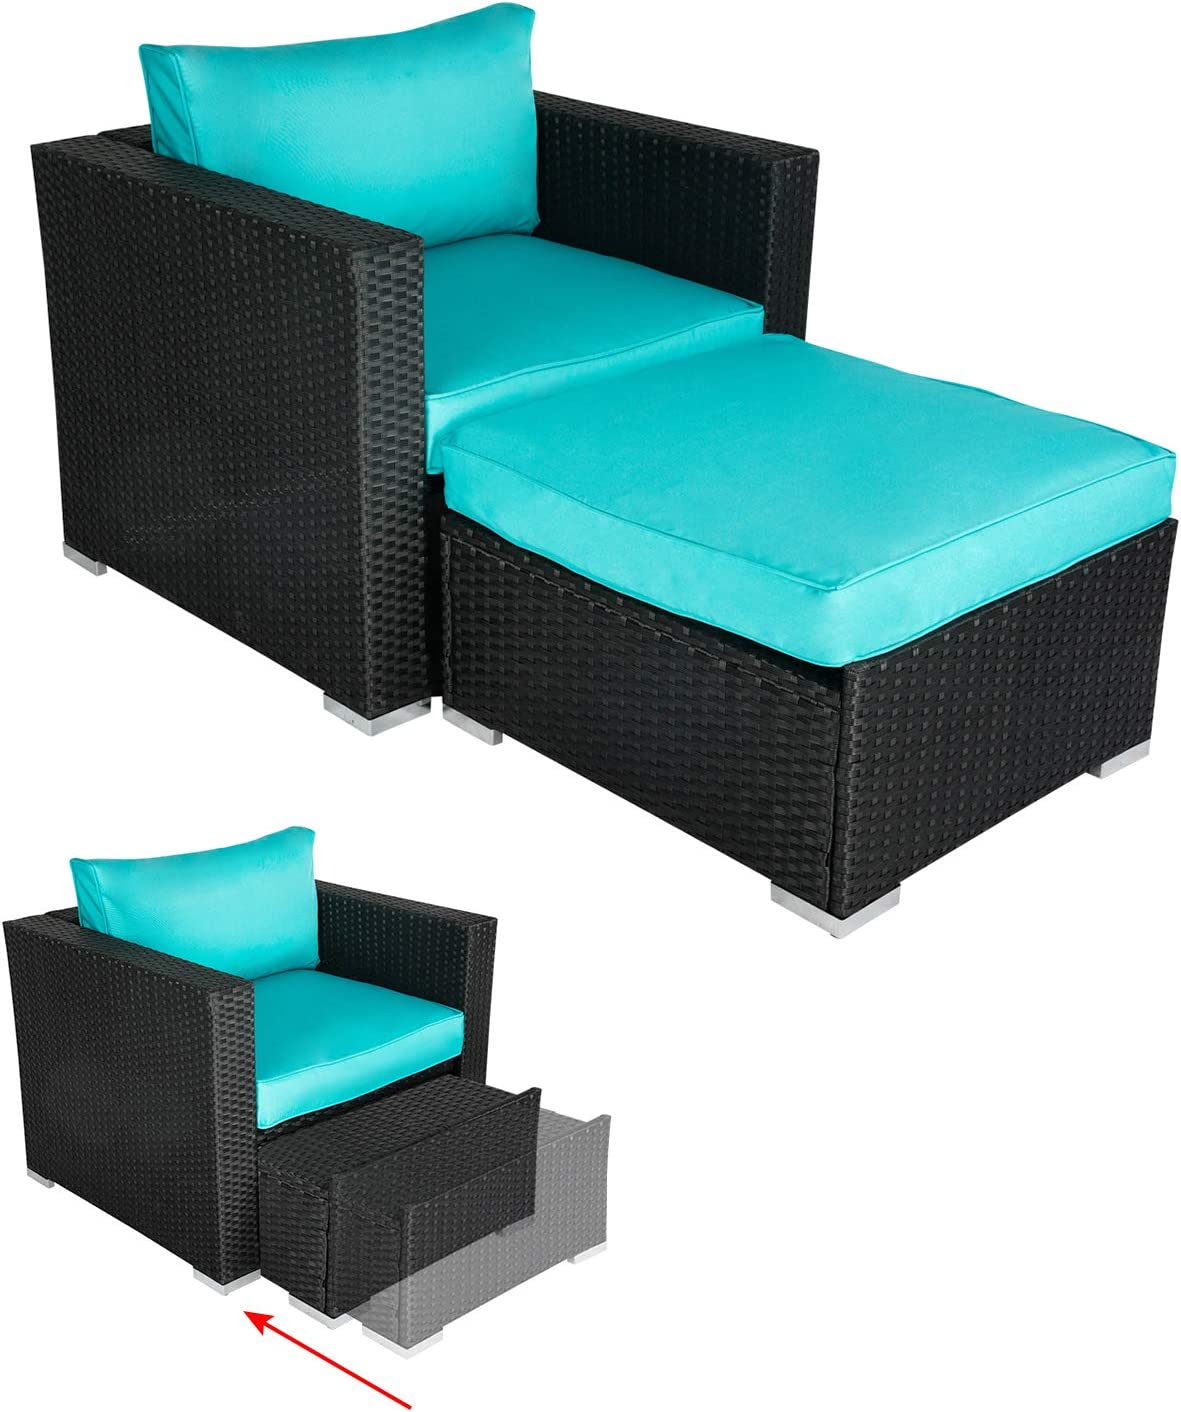 Kinbor PE Wicker Lounge Chair sale with Furniture Ottoman Cushioned Max 69% OFF